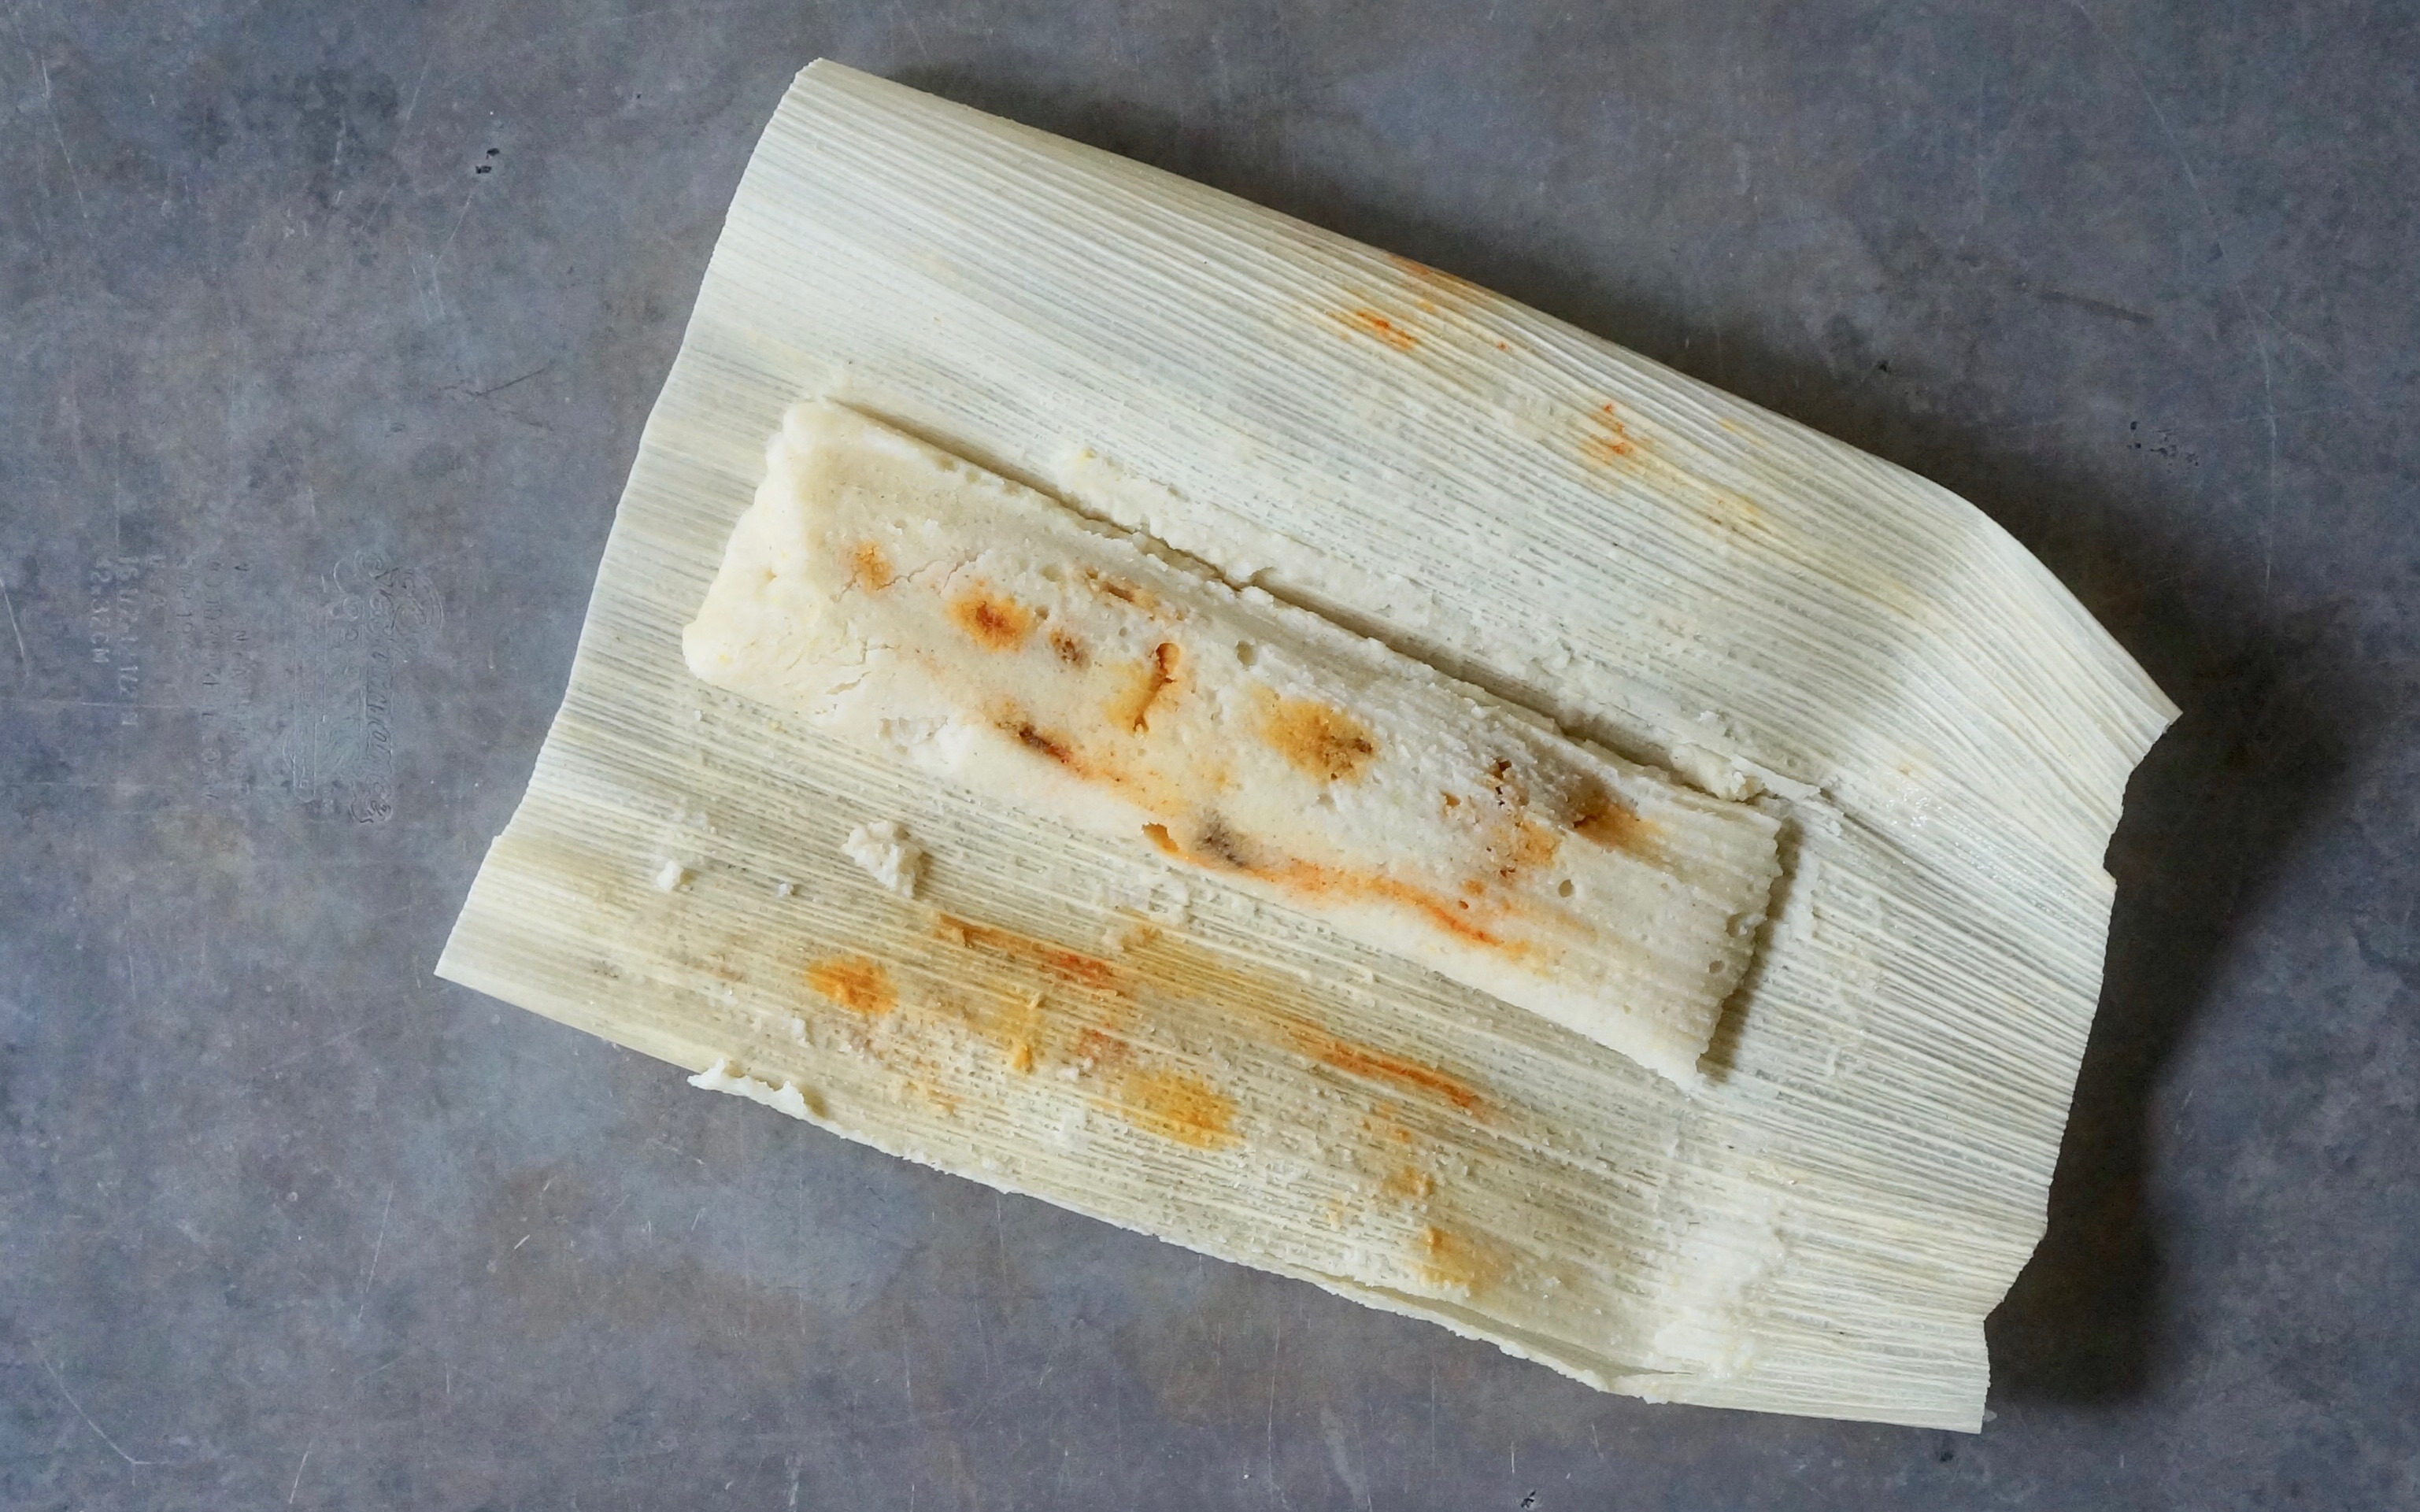 Southern-Entertaining-Smoked-Pork-Tamales-With-Classic-Red-Chile-Sauce-Rebecca-Gordon-Editor-In-Chief-Buttermilk-Lipstick-Culinary-Techniques-Southern-Hostess-RebeccaGordon-Pastry-Chef-Gardener-Birmingham-Alabama